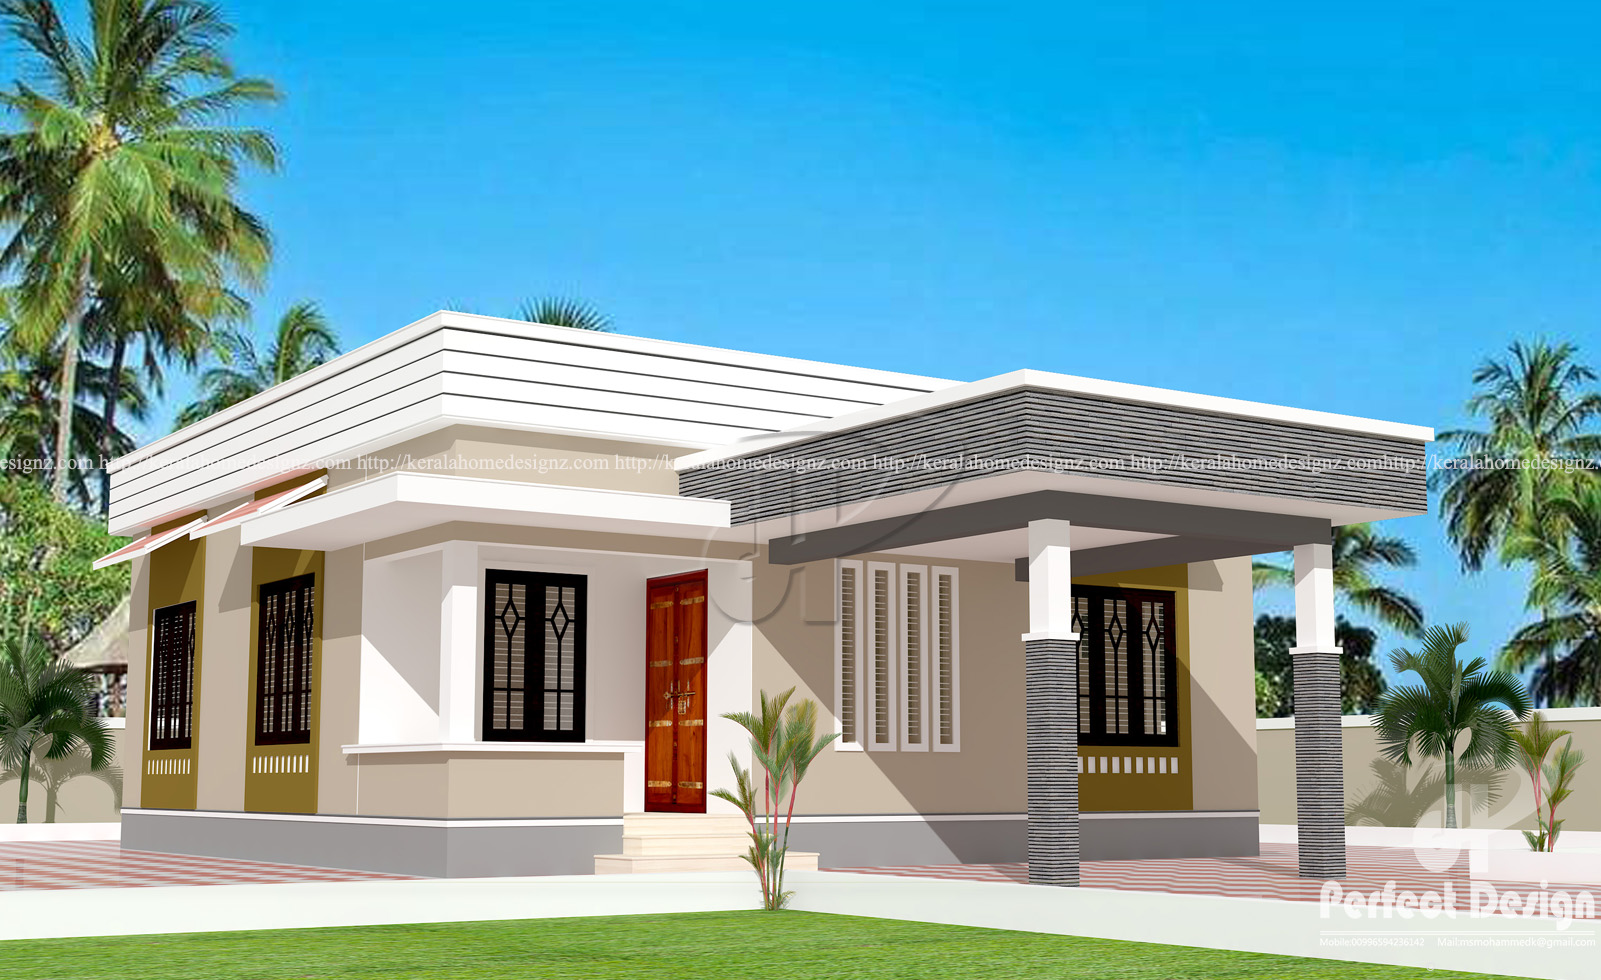 829 sq ft low cost home designs kerala home design - Oggetti design low cost ...